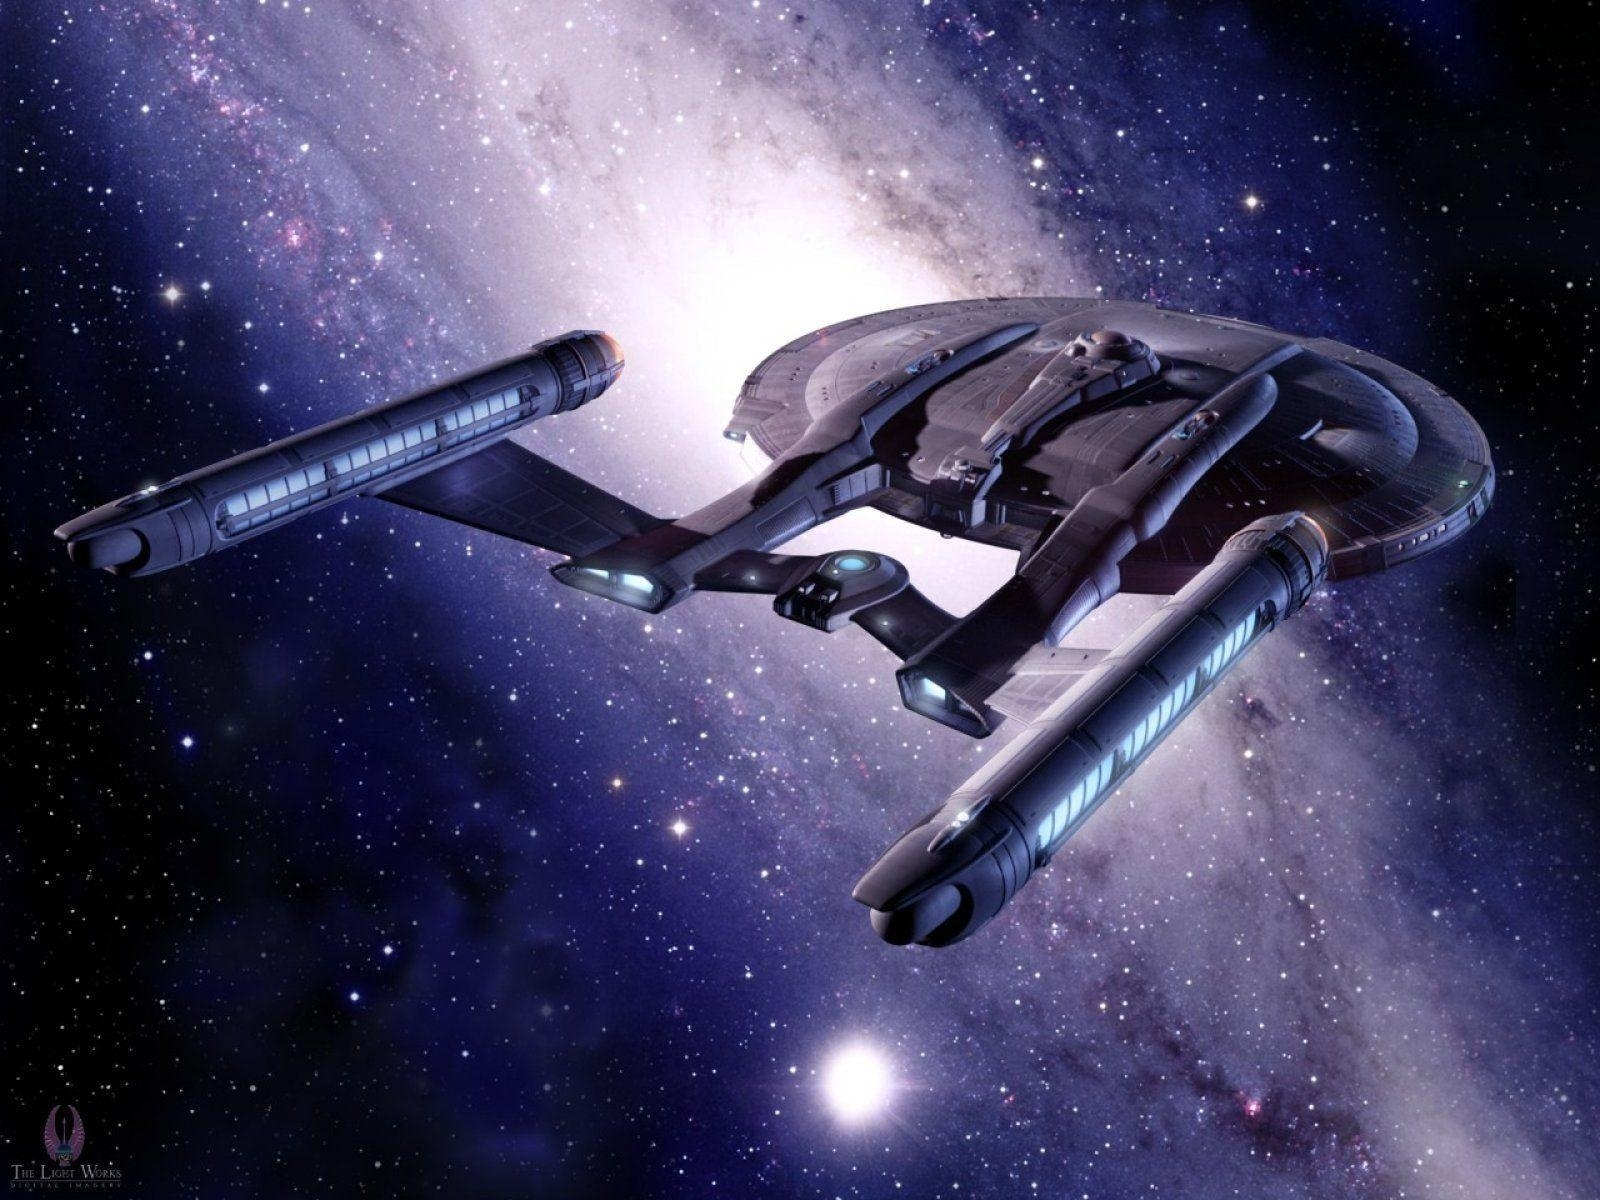 star trek enterprise wallpapers - wallpaper cave